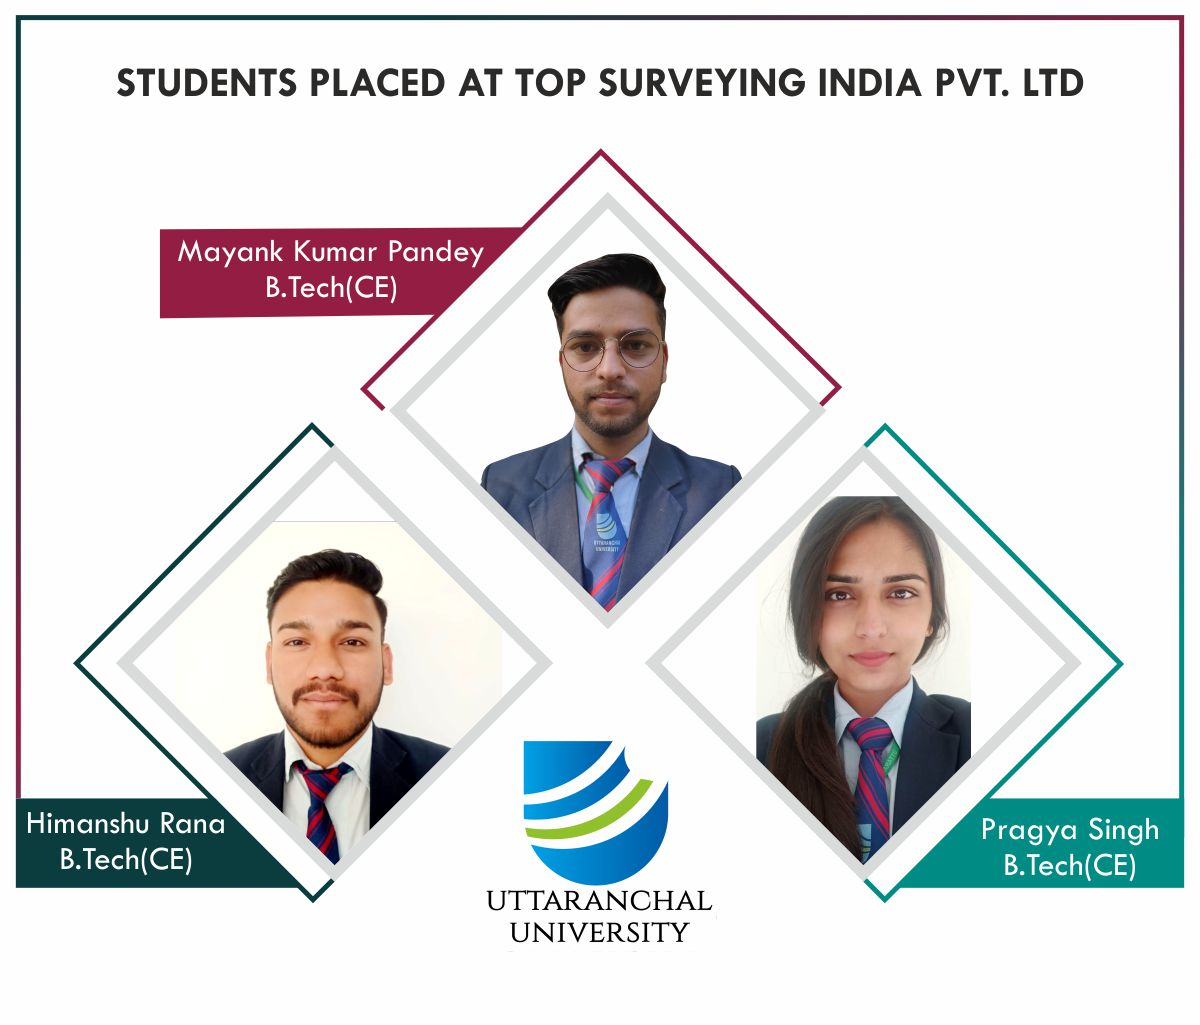 Three Students of Department of Civil Engineering placed in 'Top Surveying India Pvt. Ltd.'